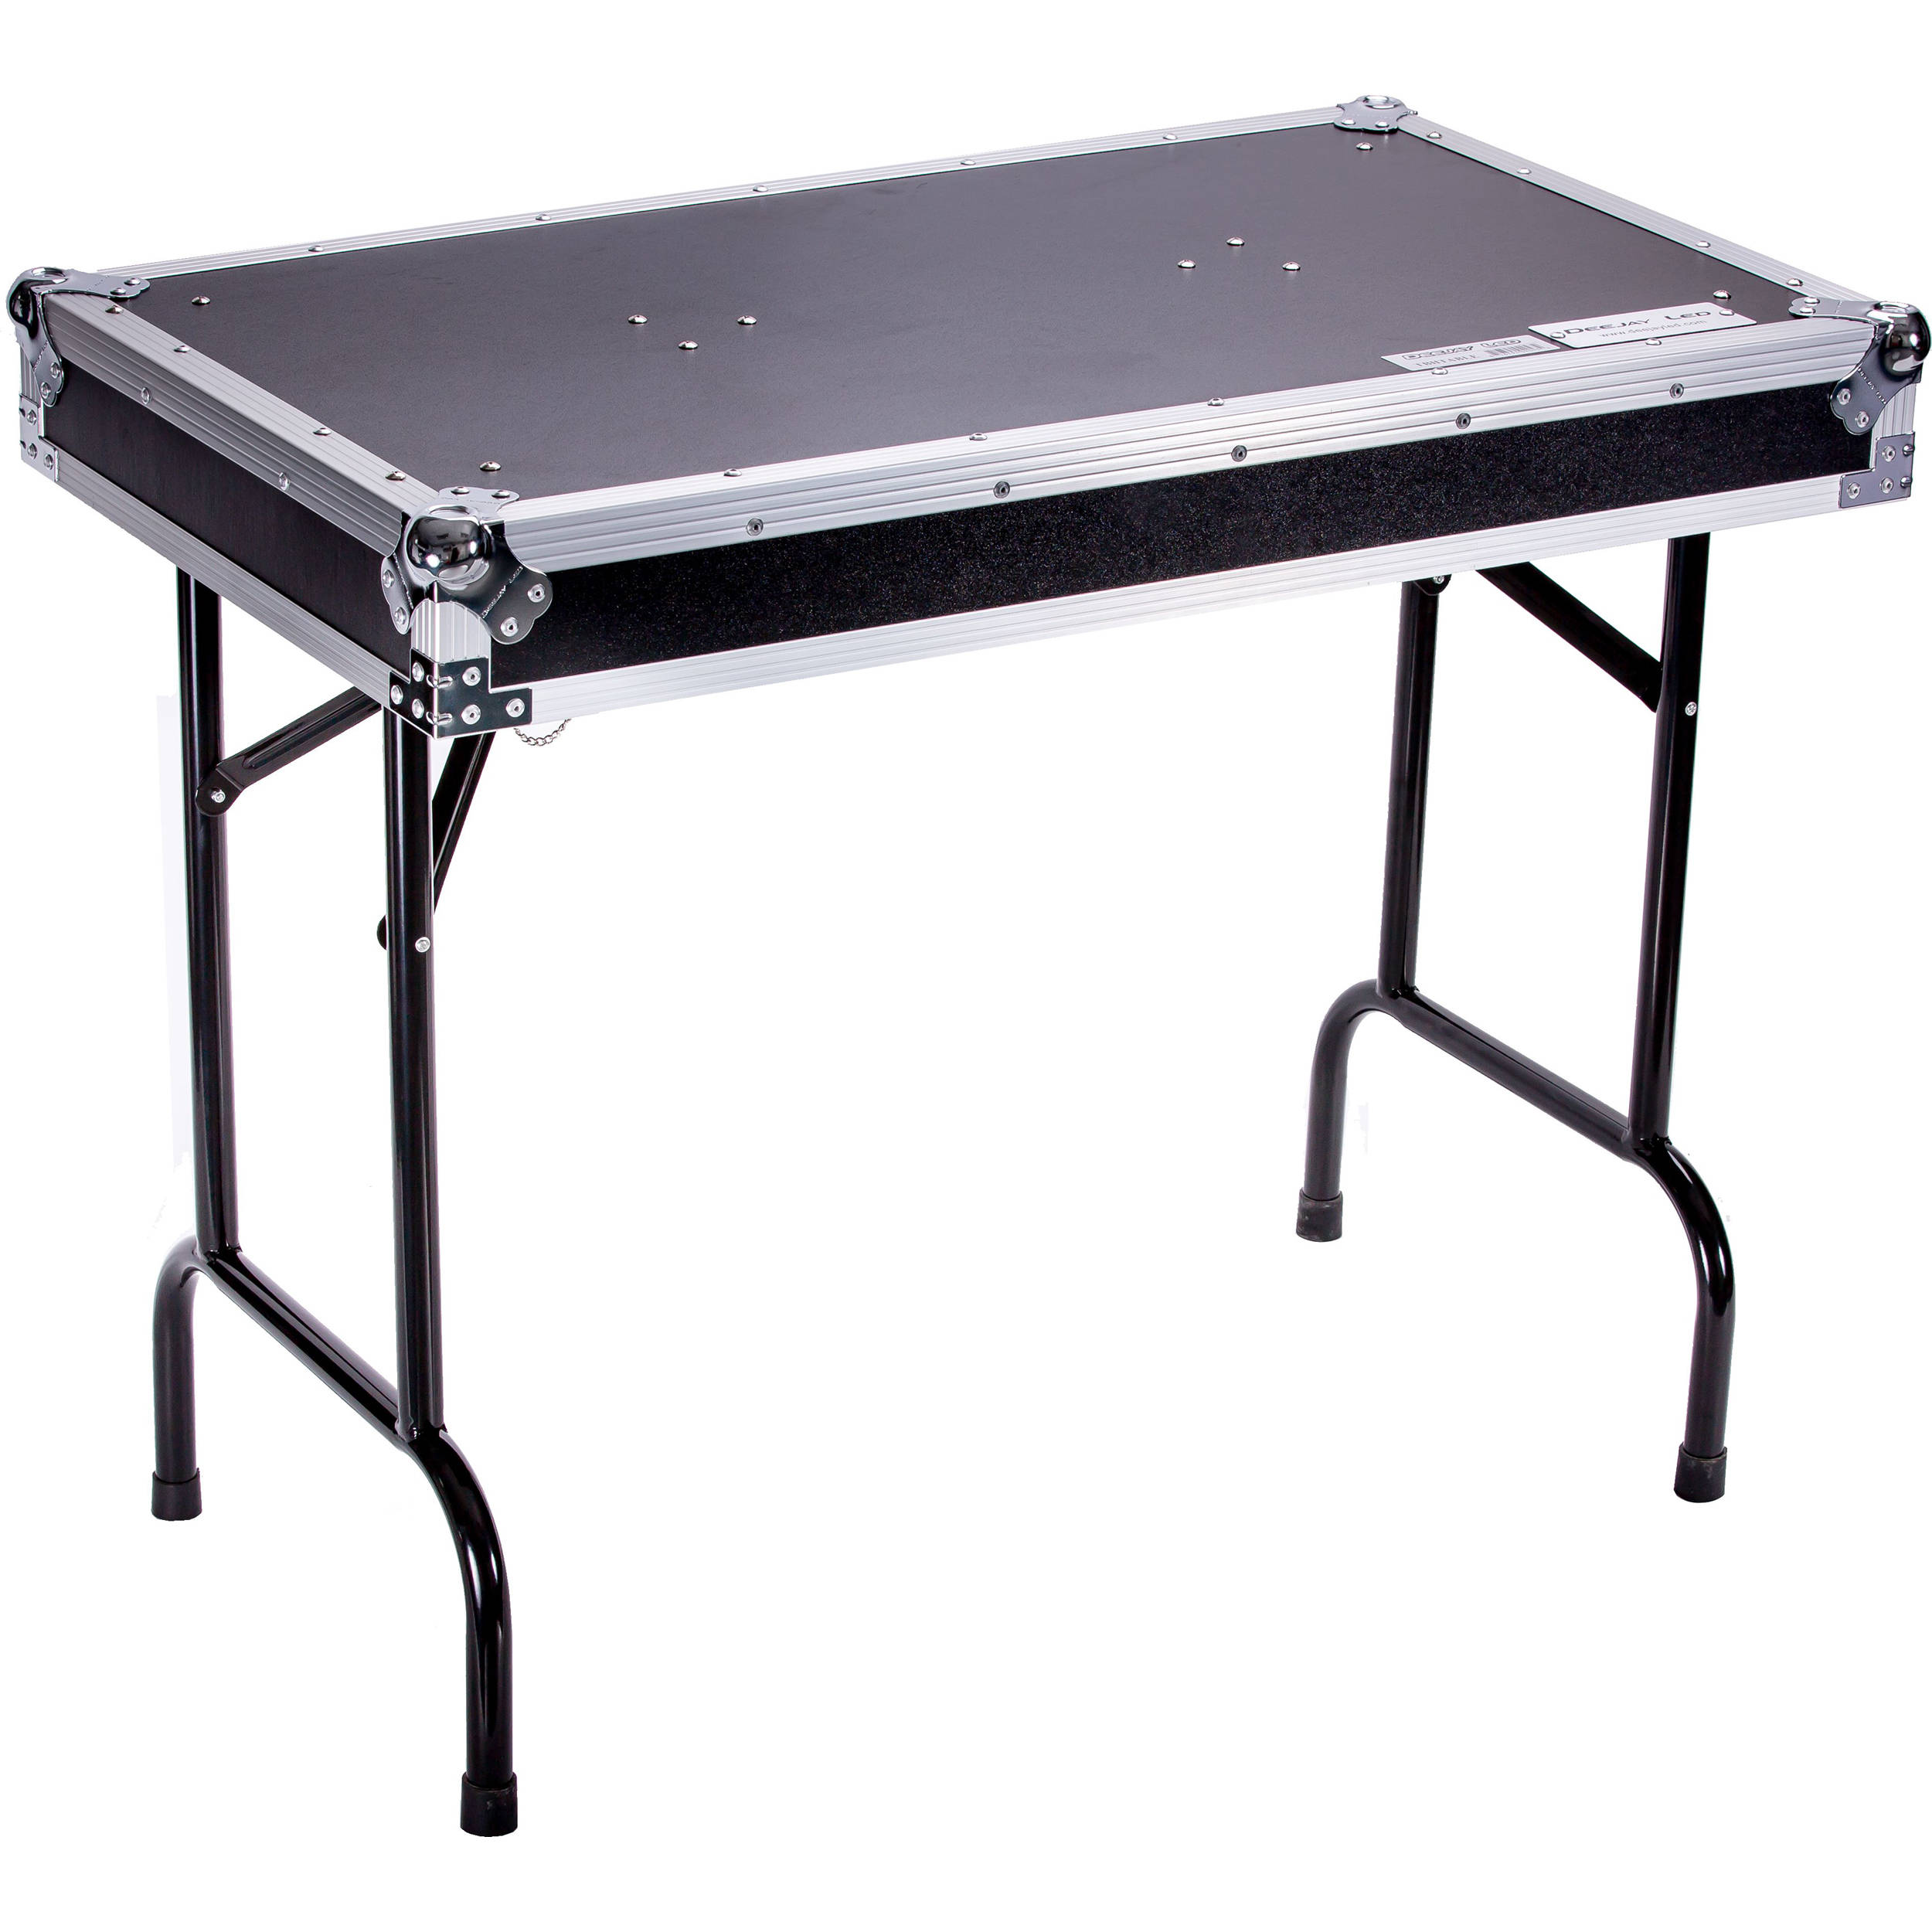 deejay led universal fold out dj table with locking tbhtable b h. Black Bedroom Furniture Sets. Home Design Ideas